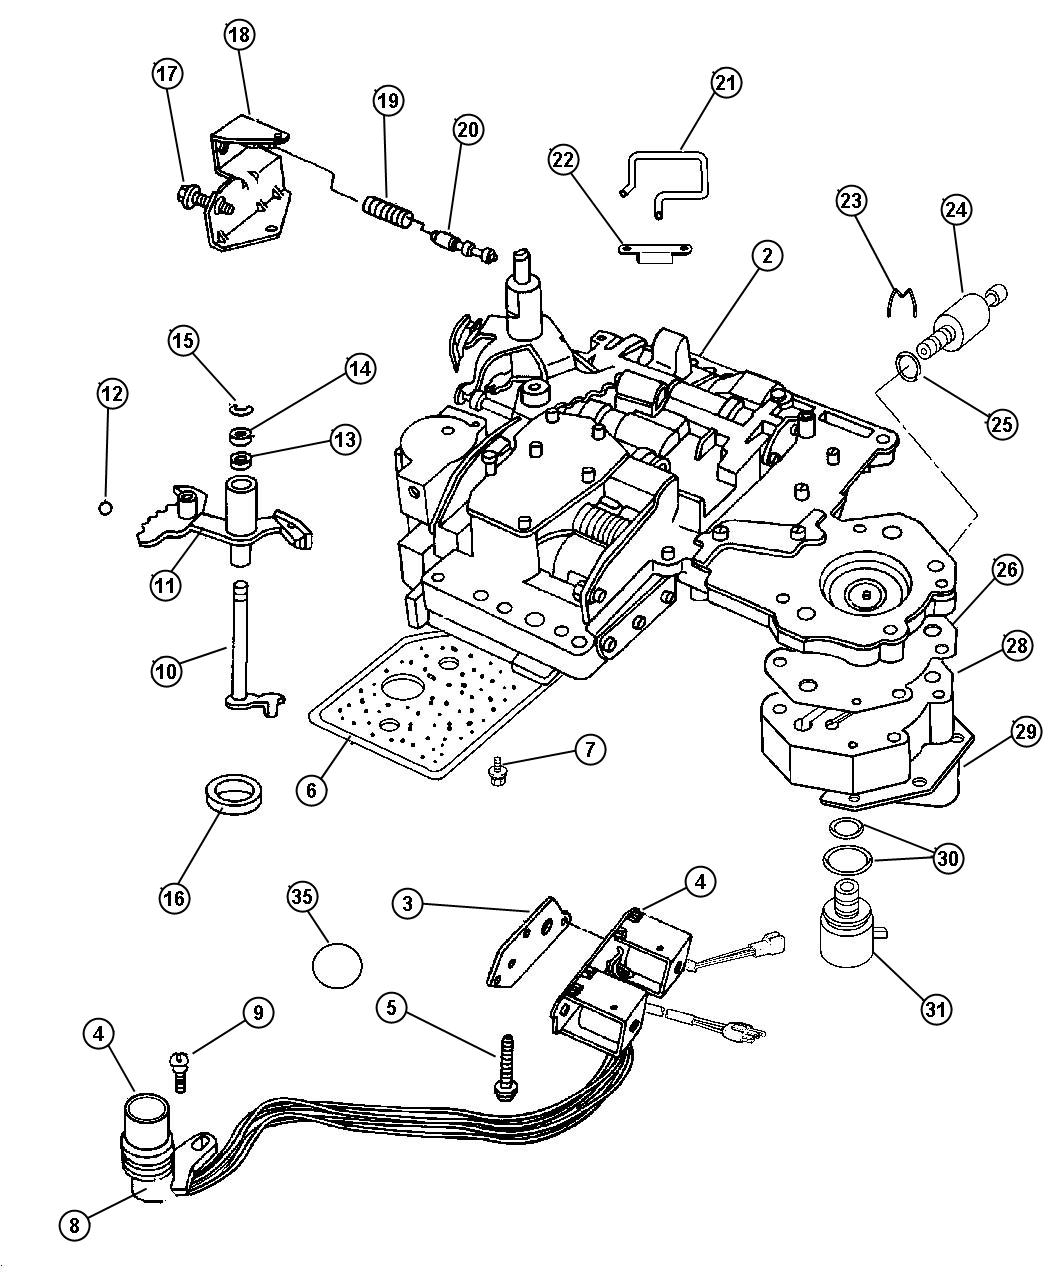 97 f150 overdrive wiring diagram